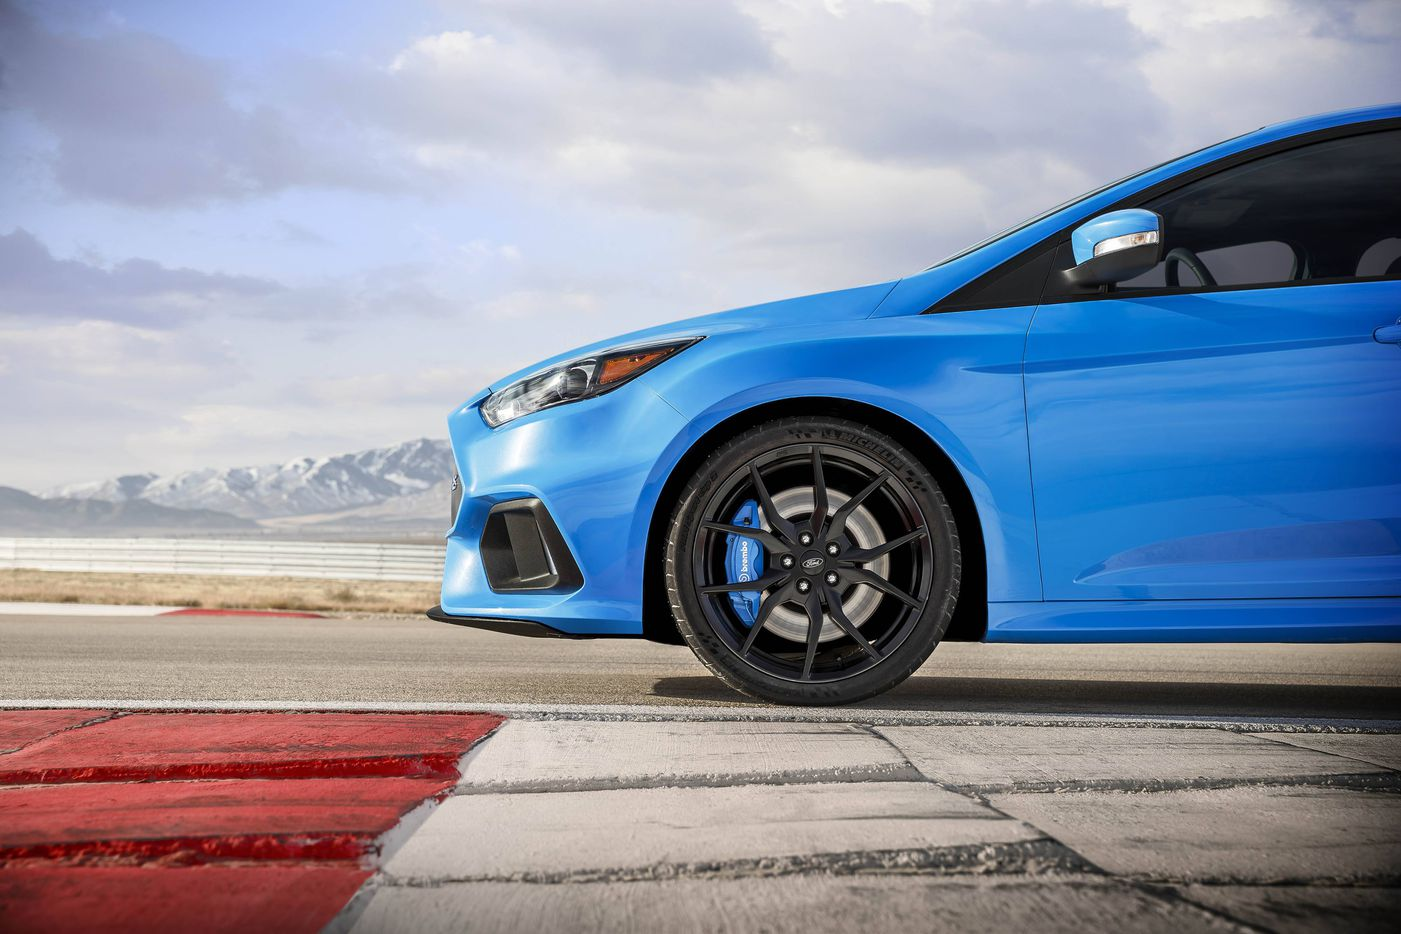 The Focus RS is the performance version of Ford's successful line of Focus hatchbacks.